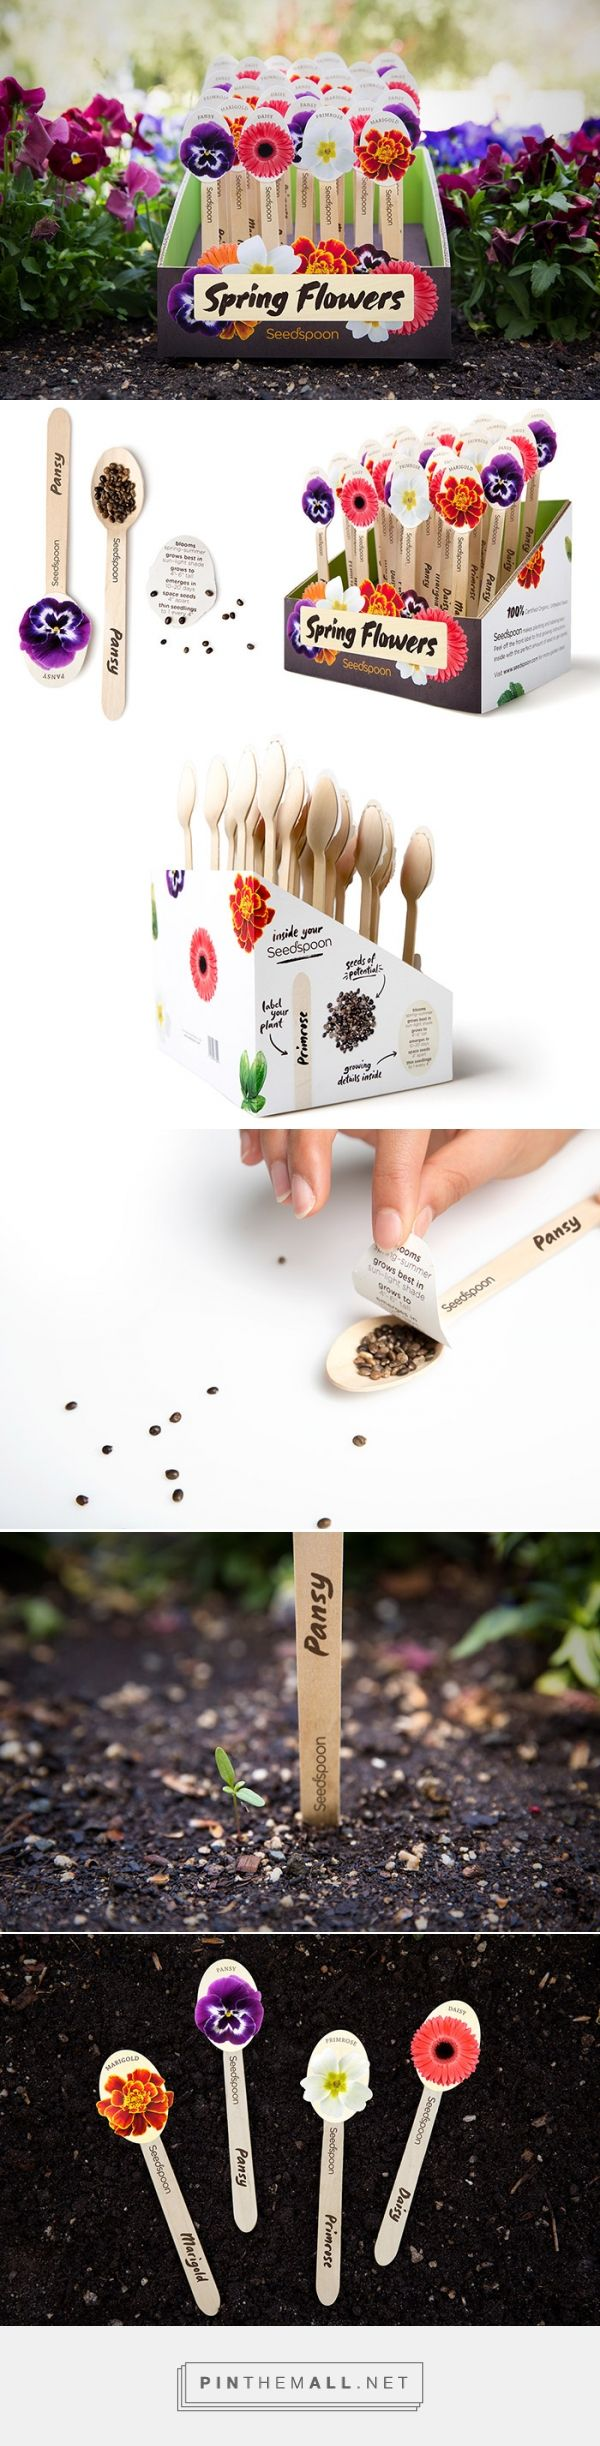 Seedspoon via InspirationDaily curated by Packaging Diva PD. Love this clever seed packaging idea.